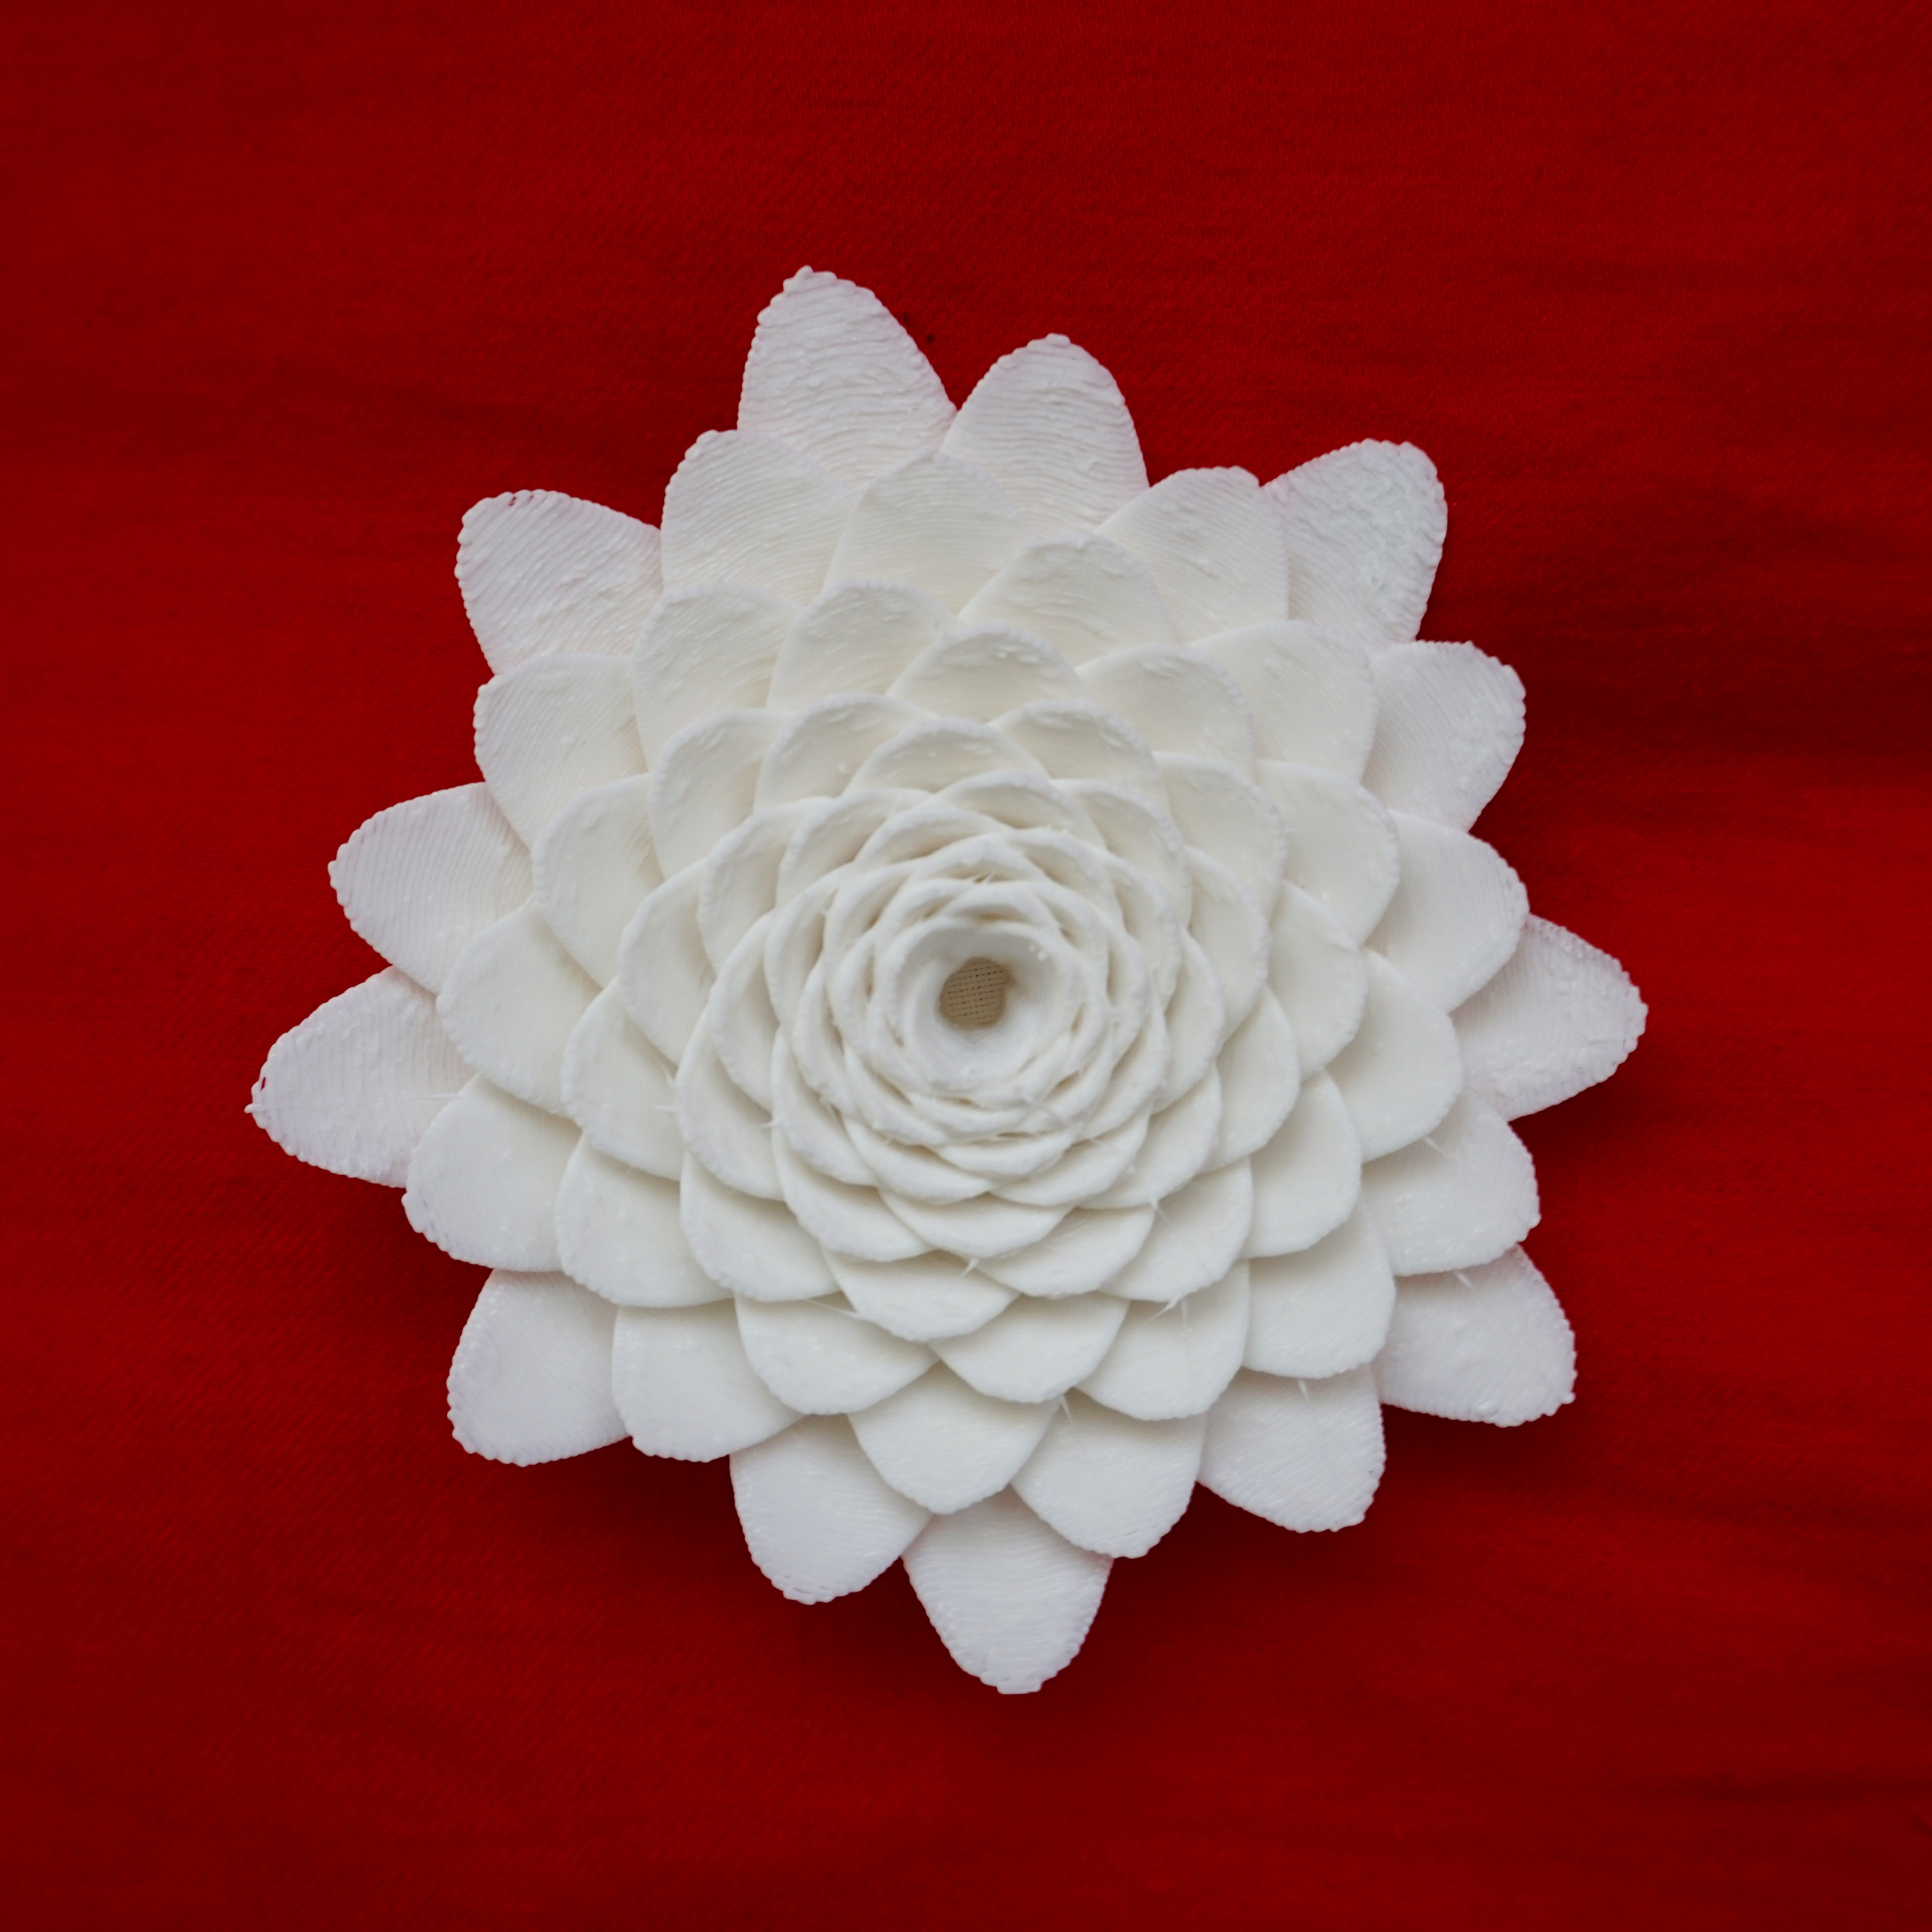 White 3d printed flower displaying individual petals spirally out from the center with approximately 13 levels.